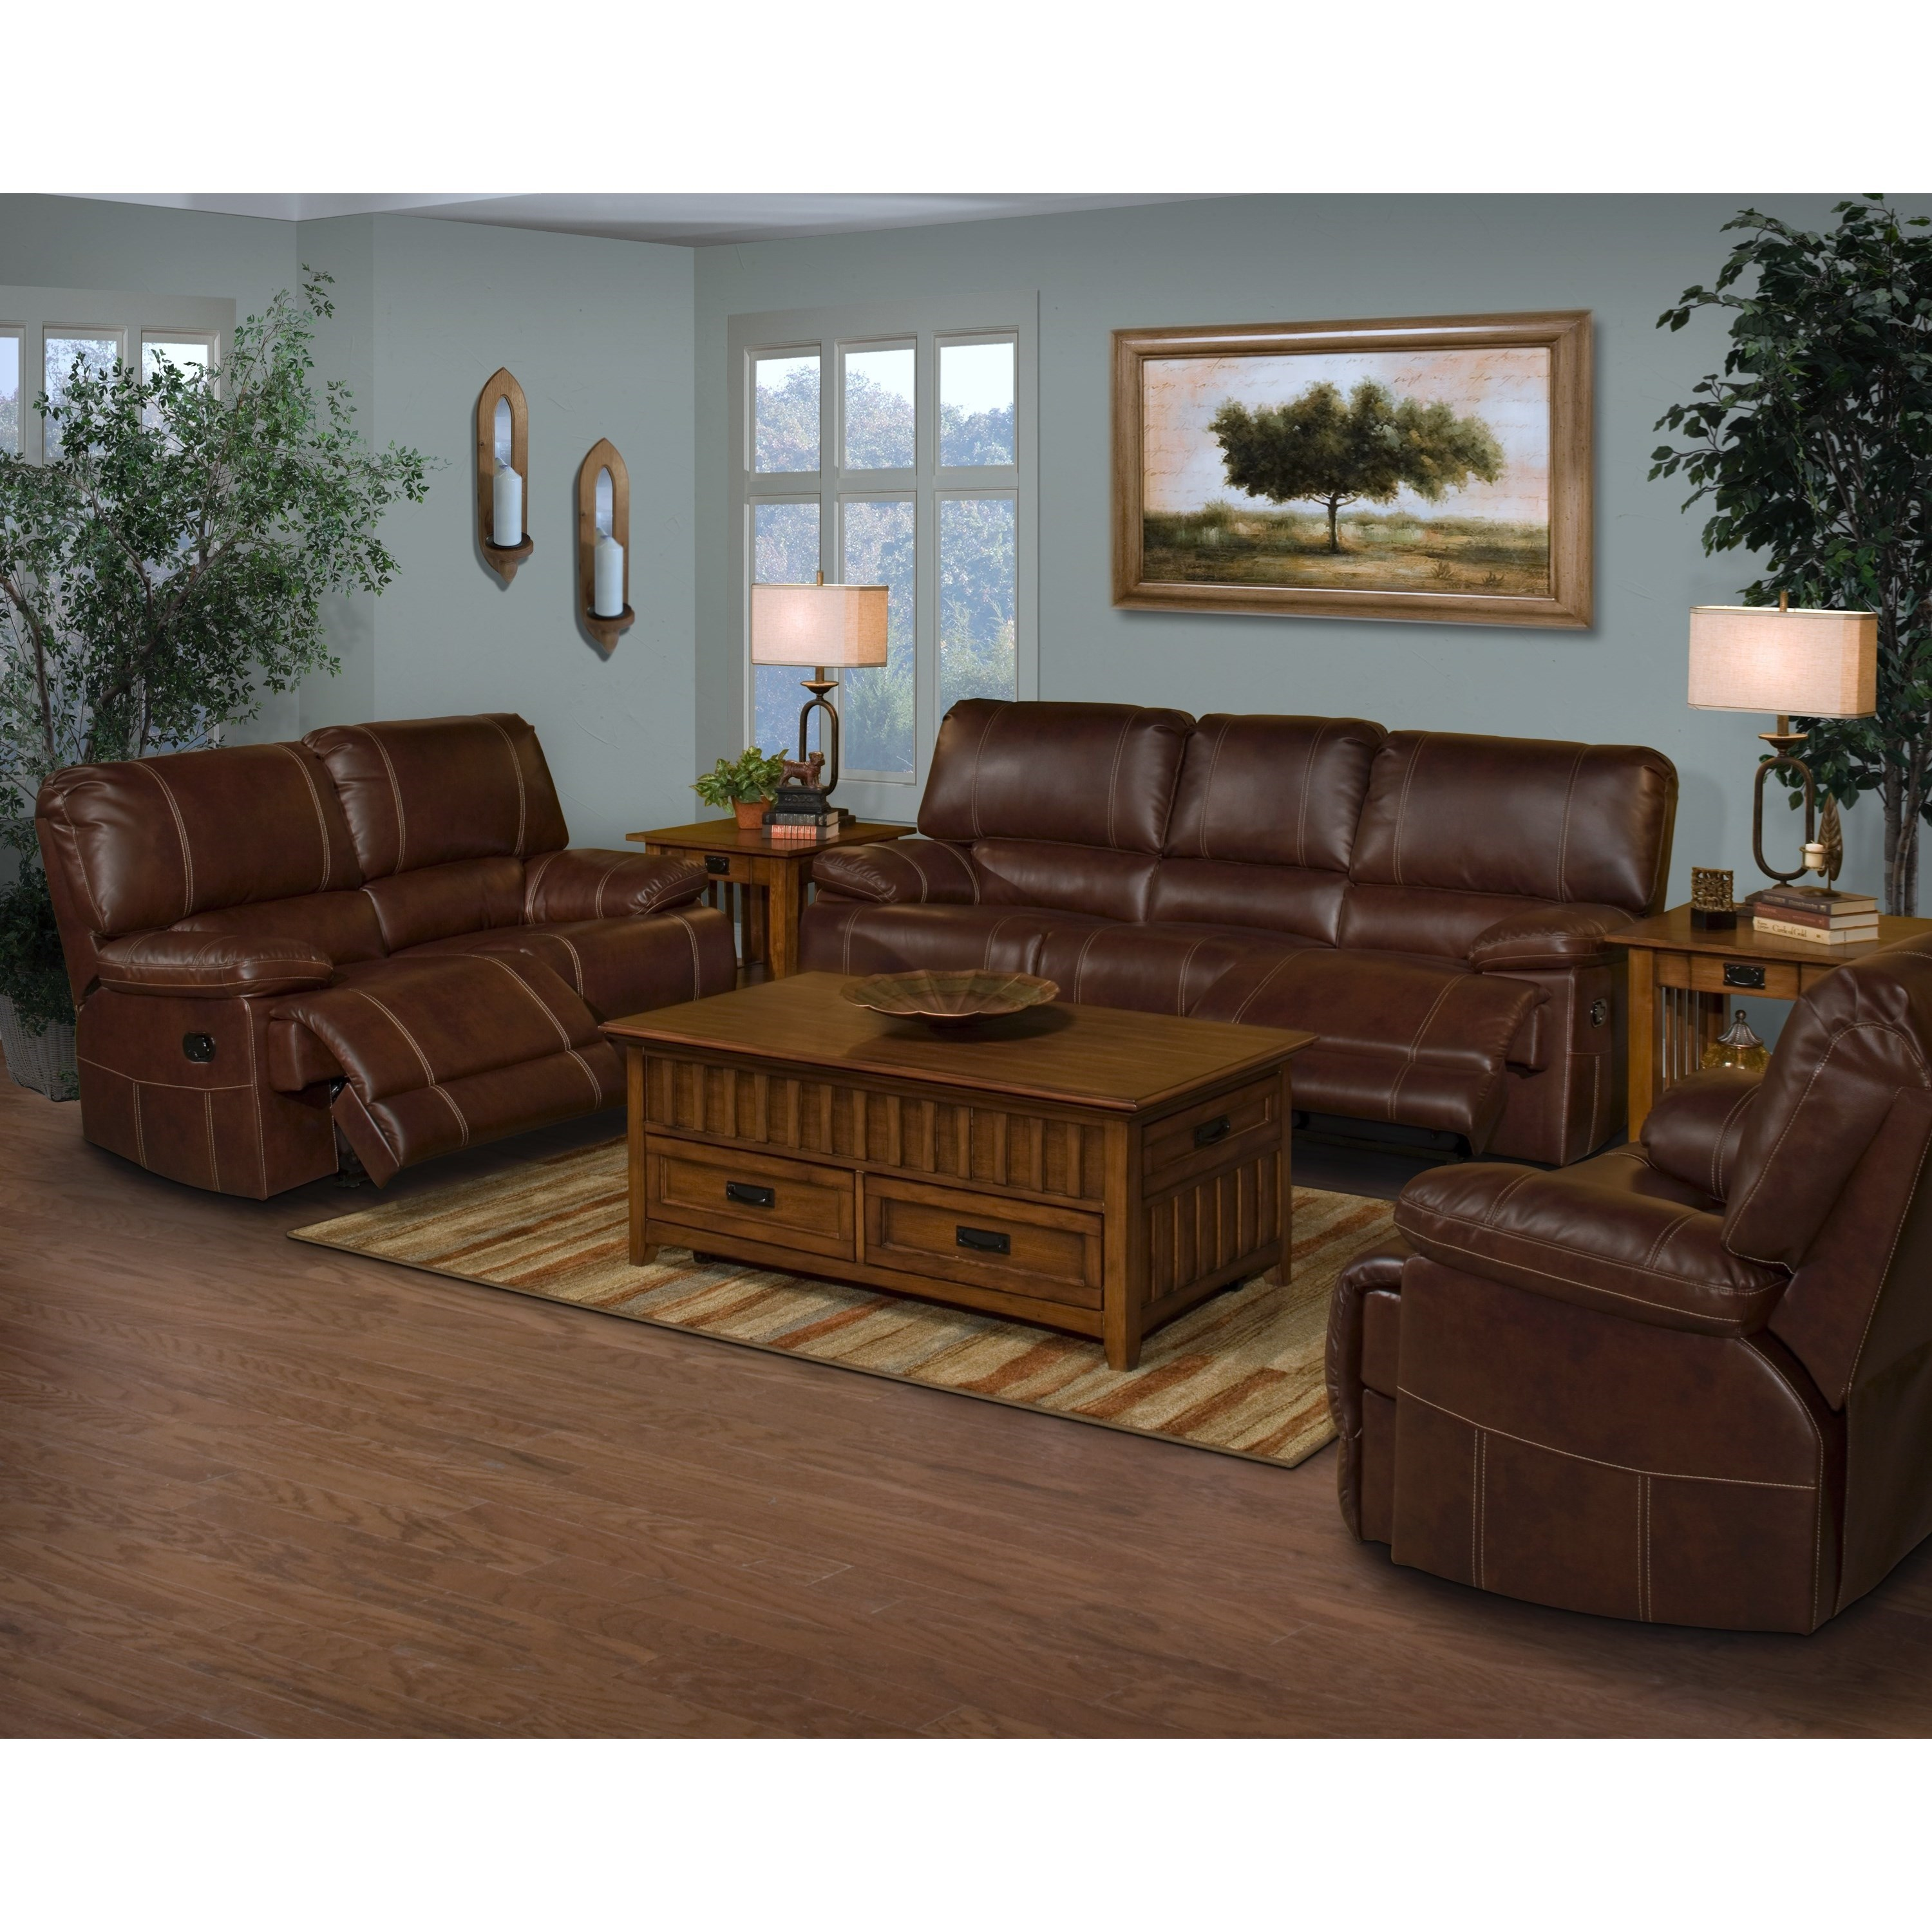 New Classic Wyoming 22-303-32 Casual Power Dual Recliner